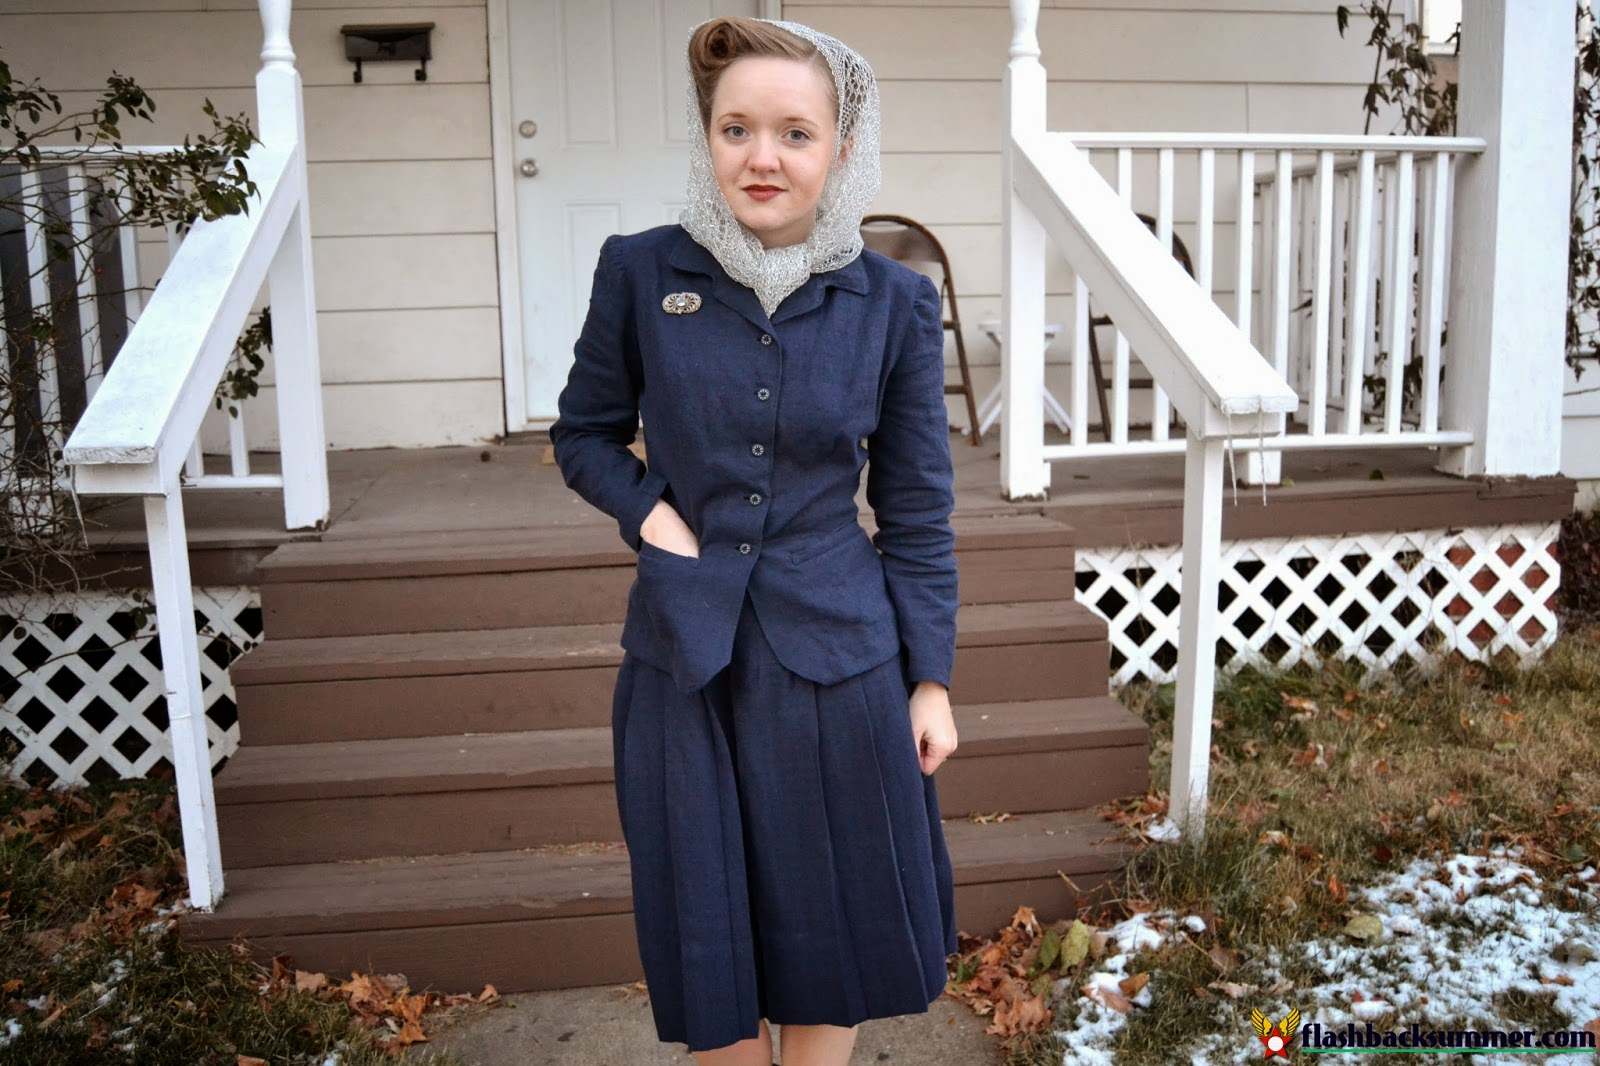 Flashback Summer: My First Me-Made 1940s Suit - Simplicity 4362, Hollywood Pattern 1162